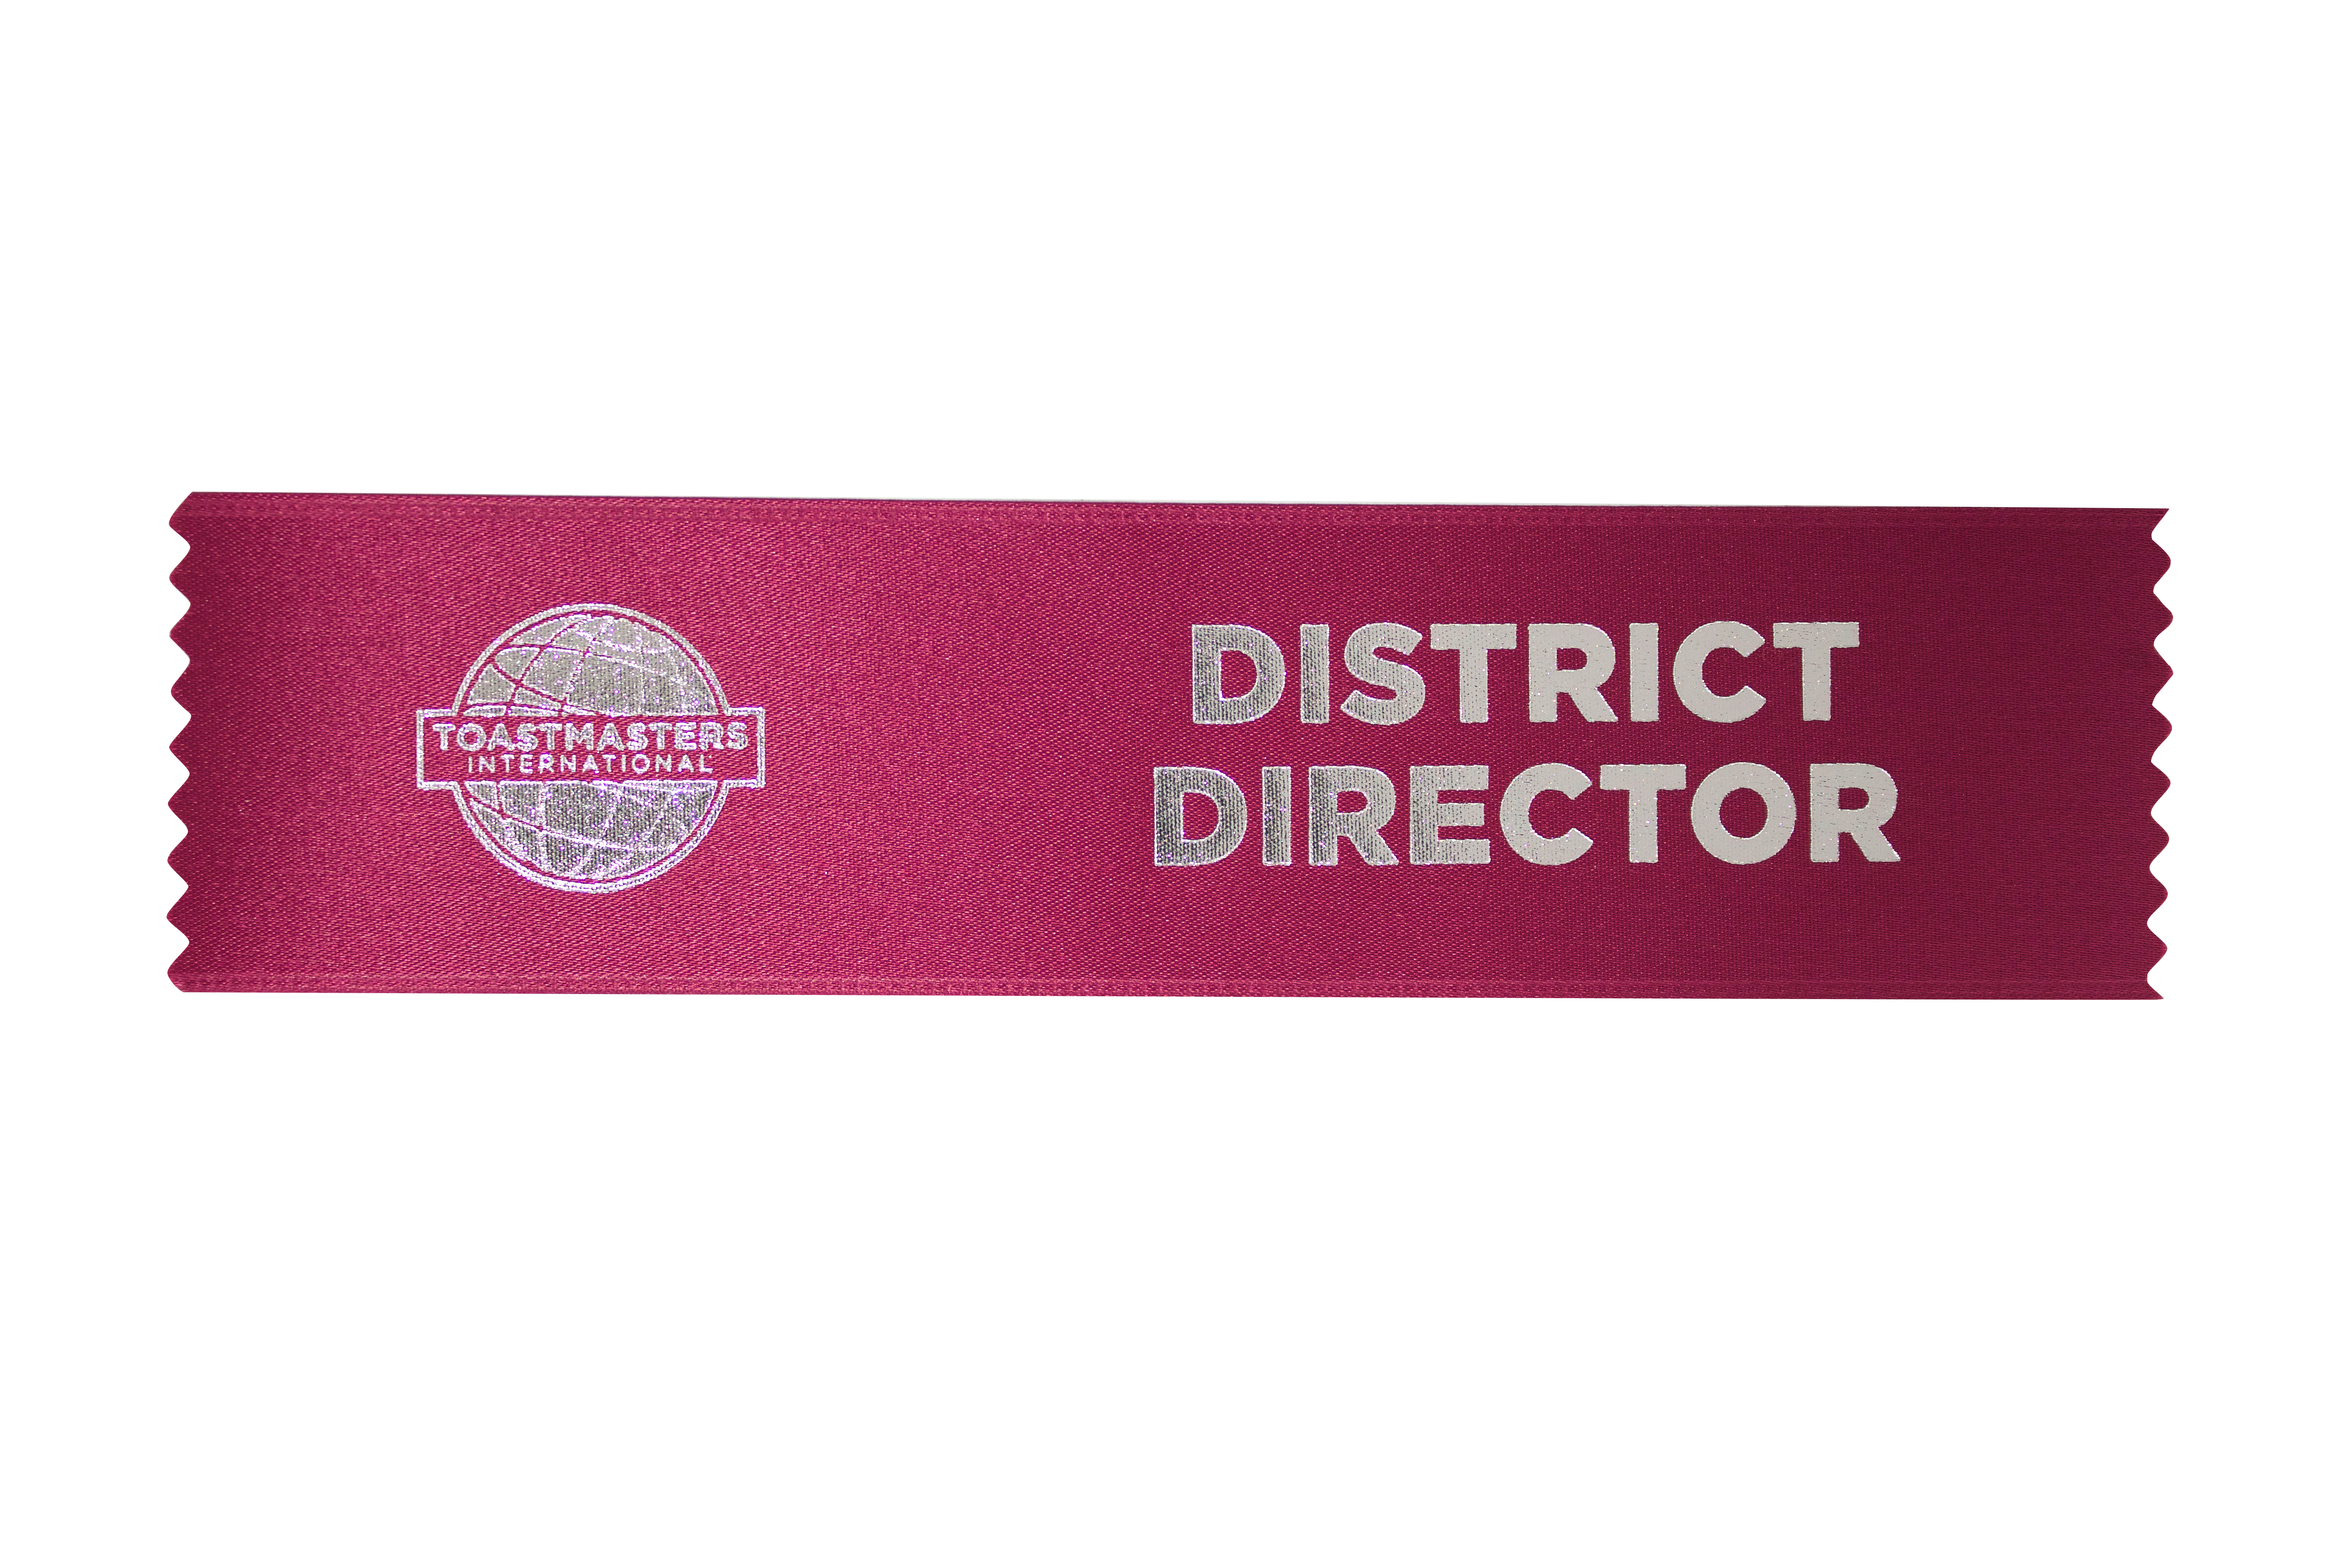 District Director Ribbon